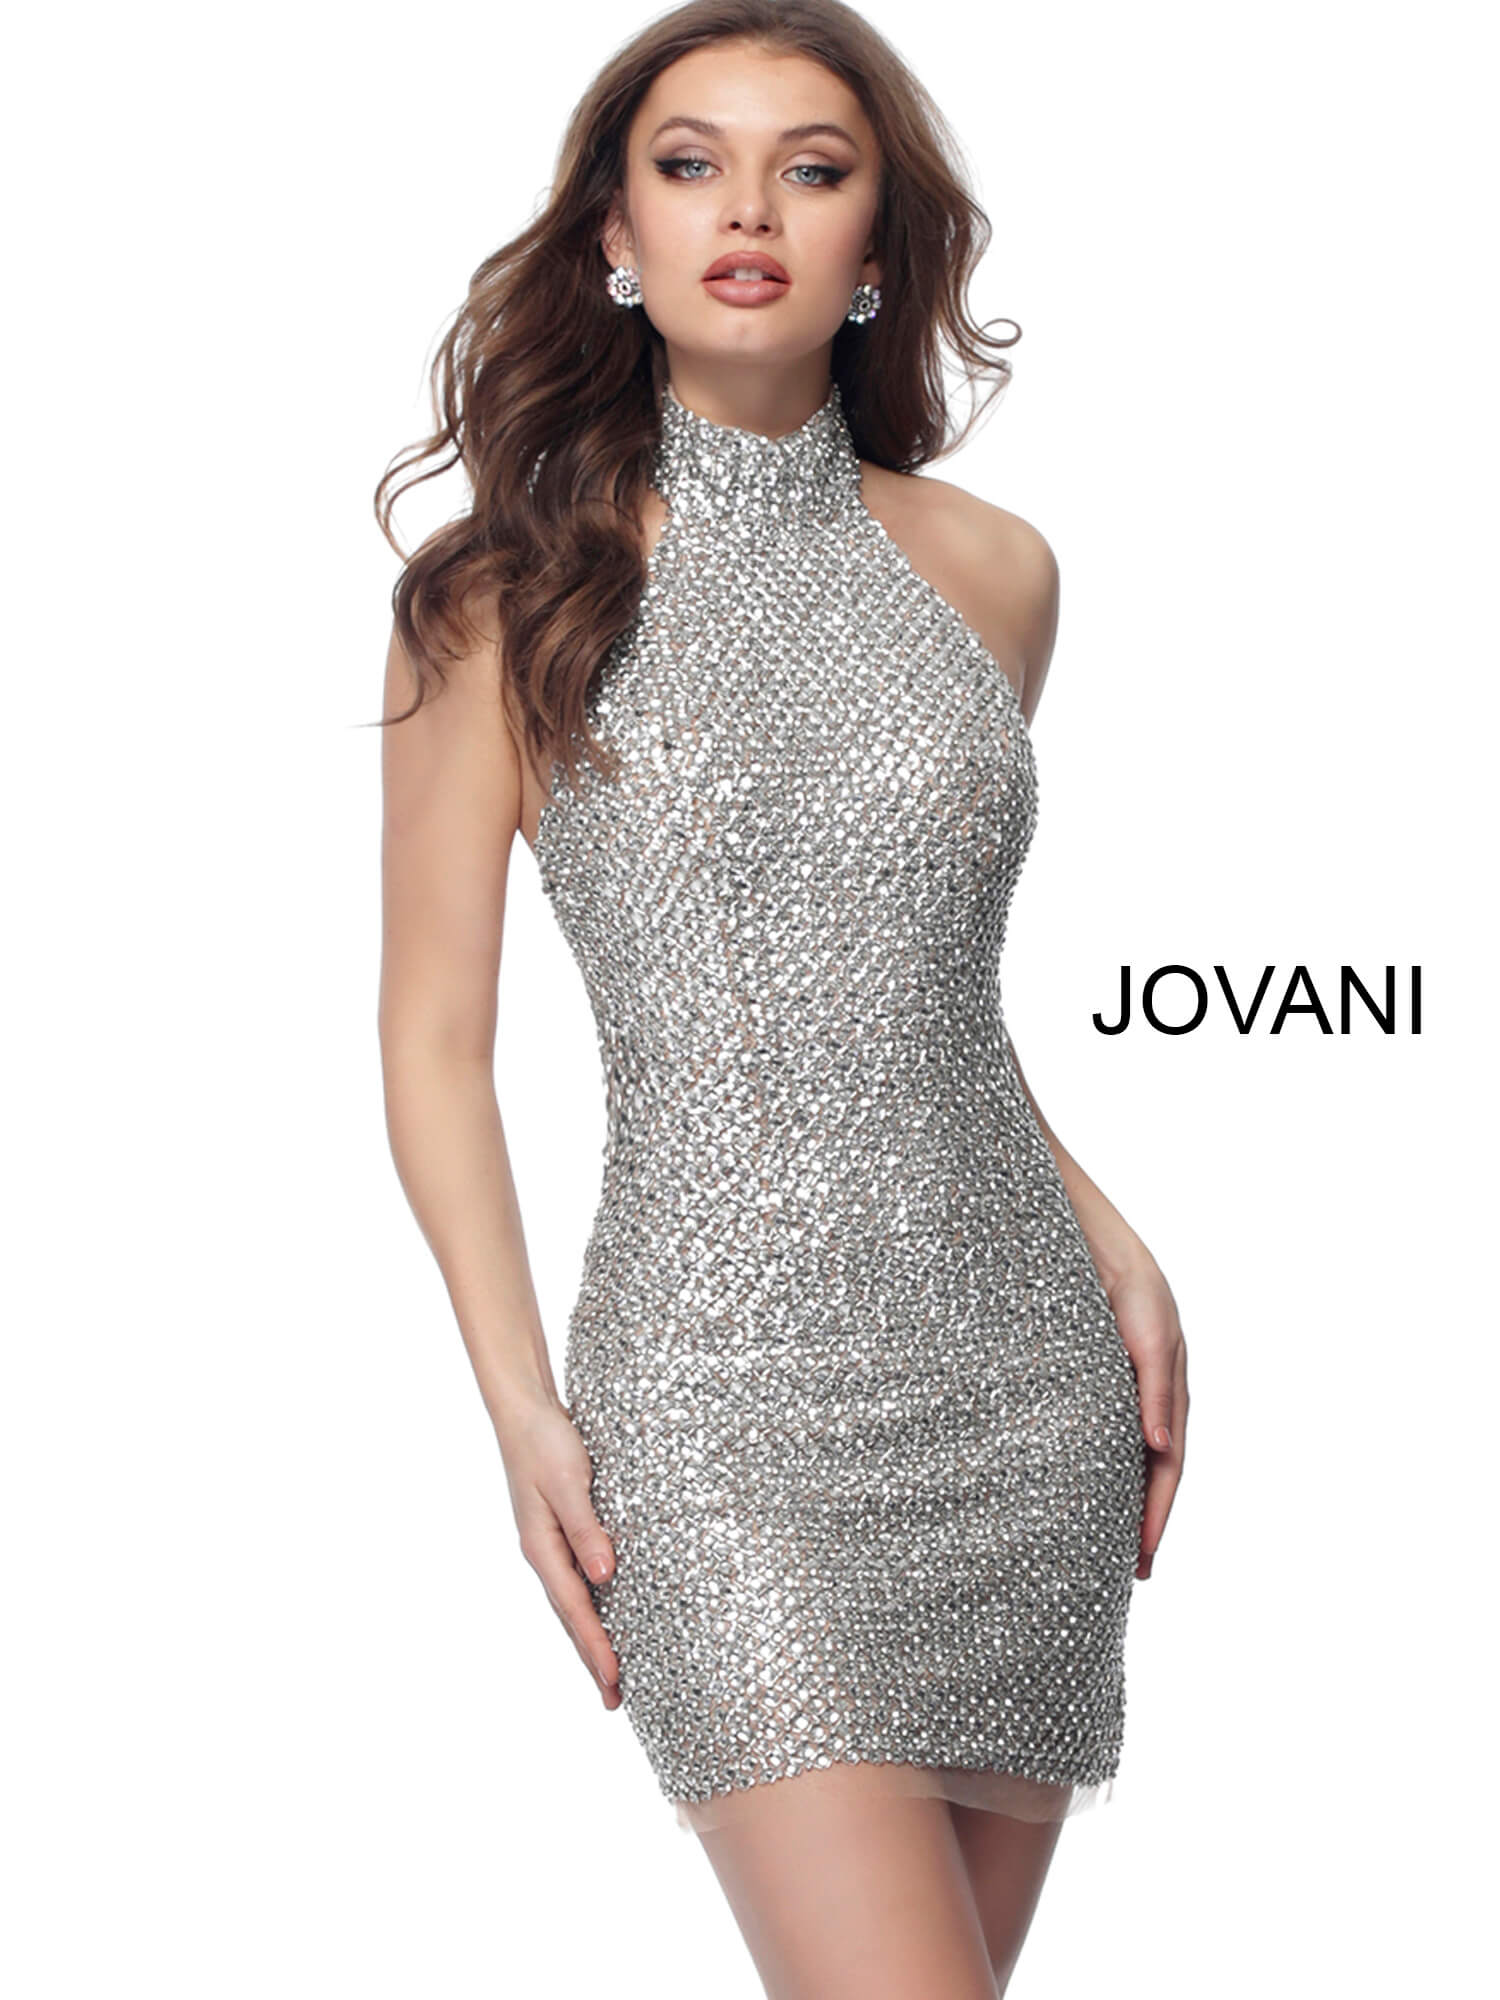 jovani Nude Silver Fully Beaded High Neck Short Dress 66549